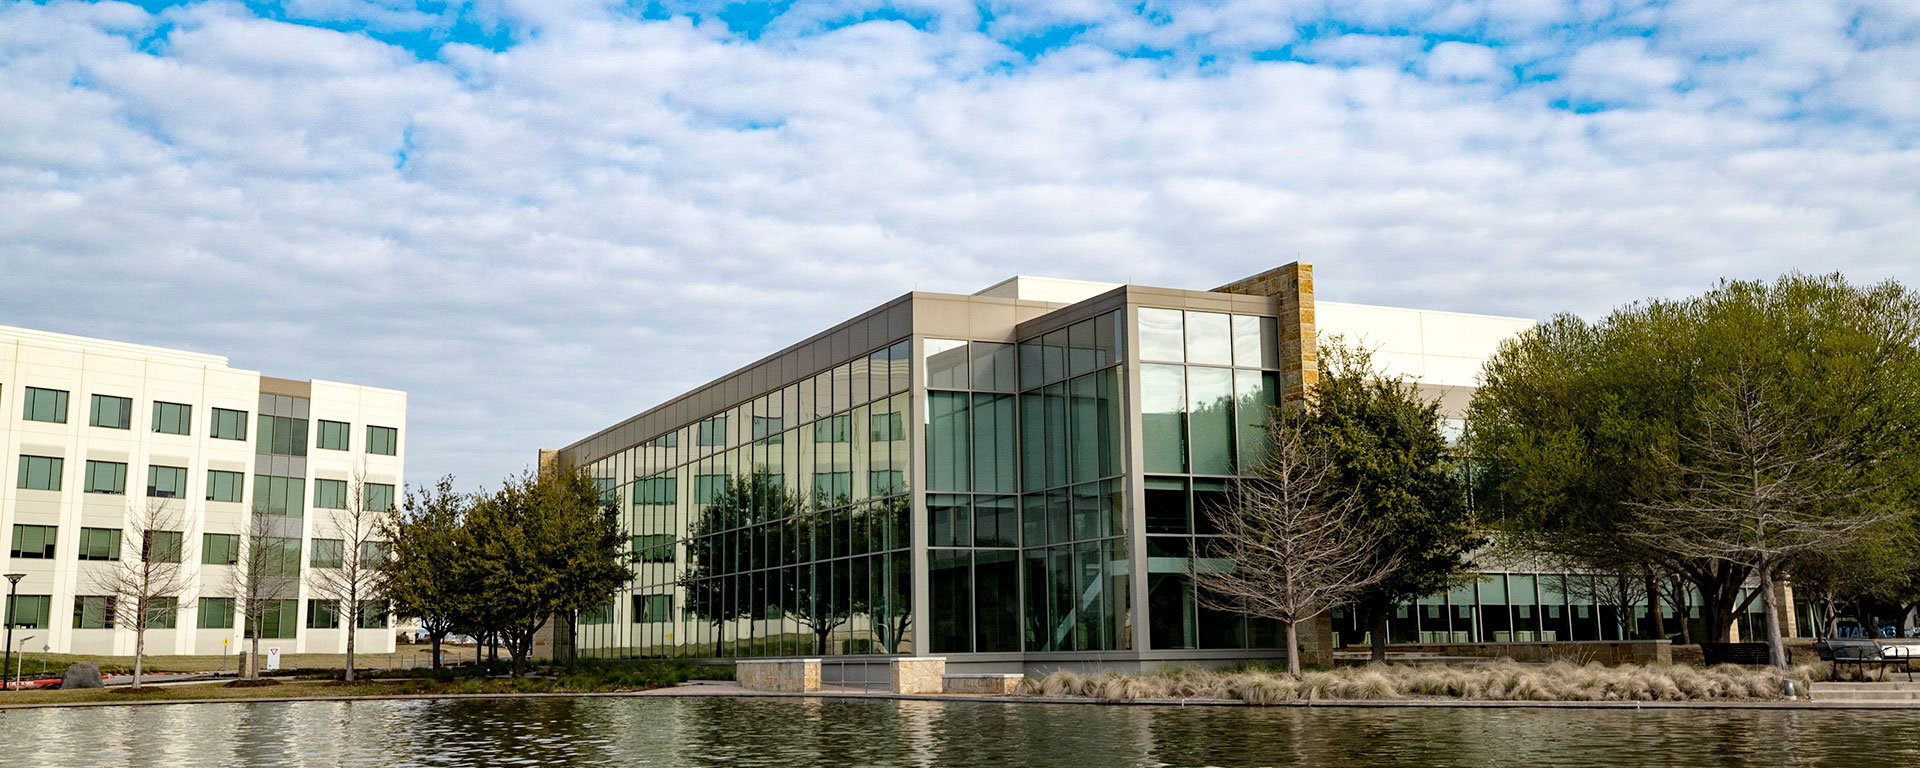 Capital One plano, texas corporate office location page